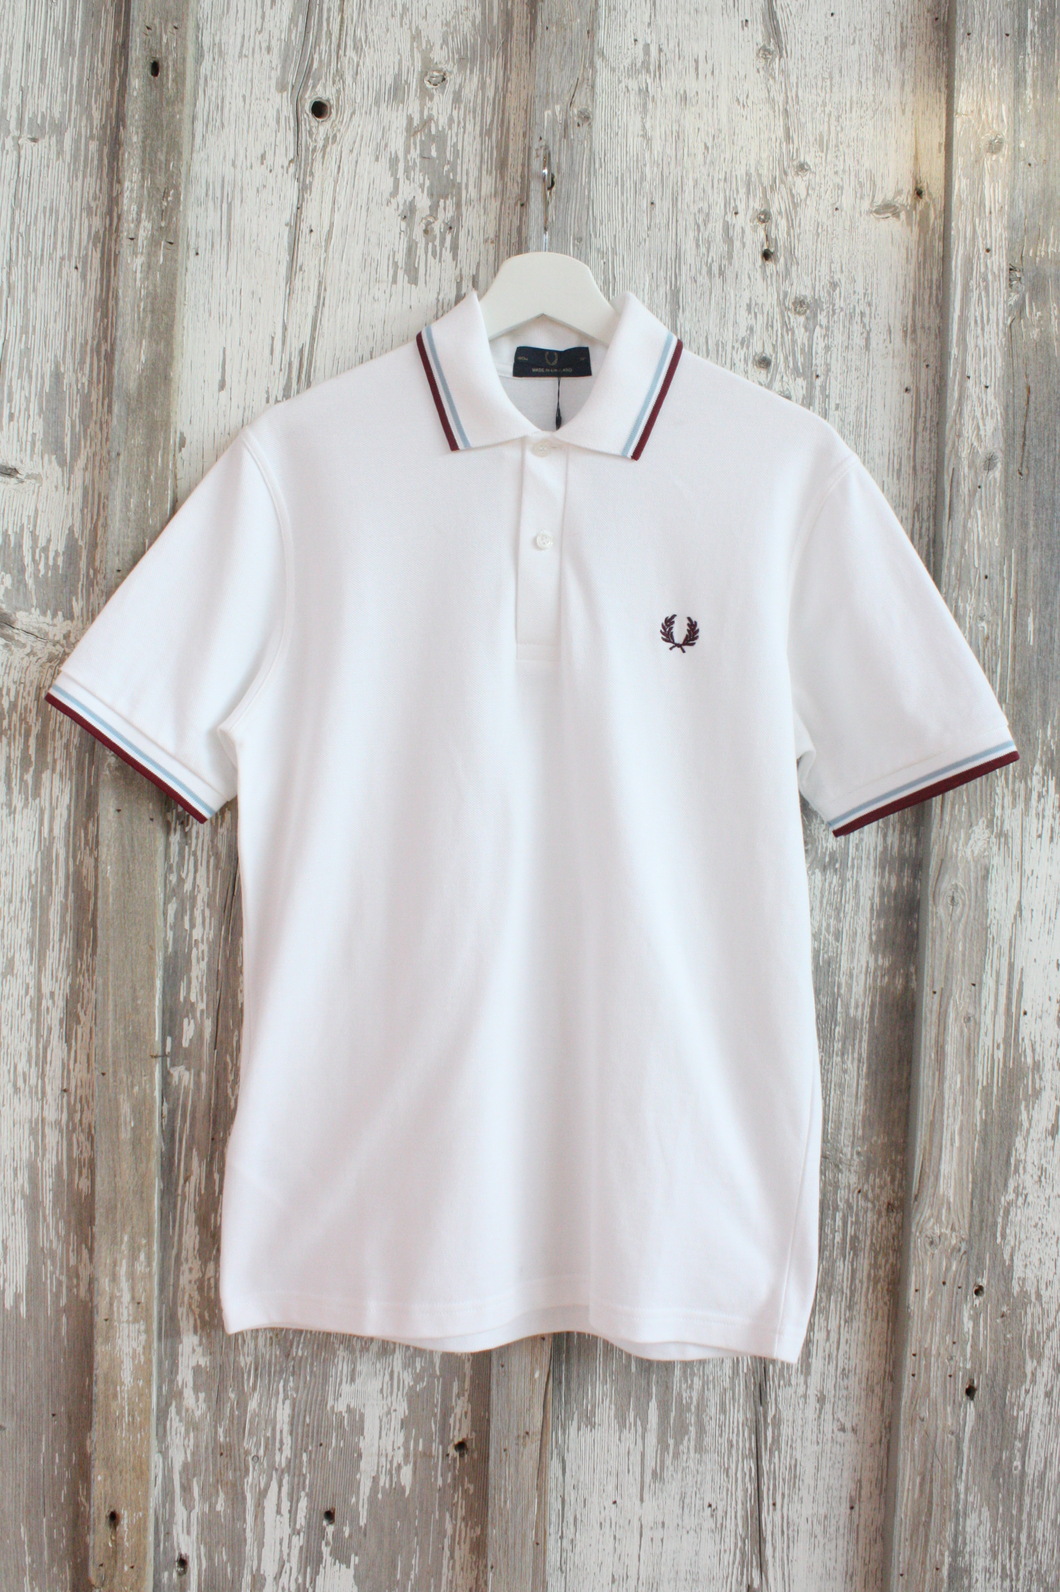 Fred Perry - M12 Polo Shirt in White, Maroon and Blue